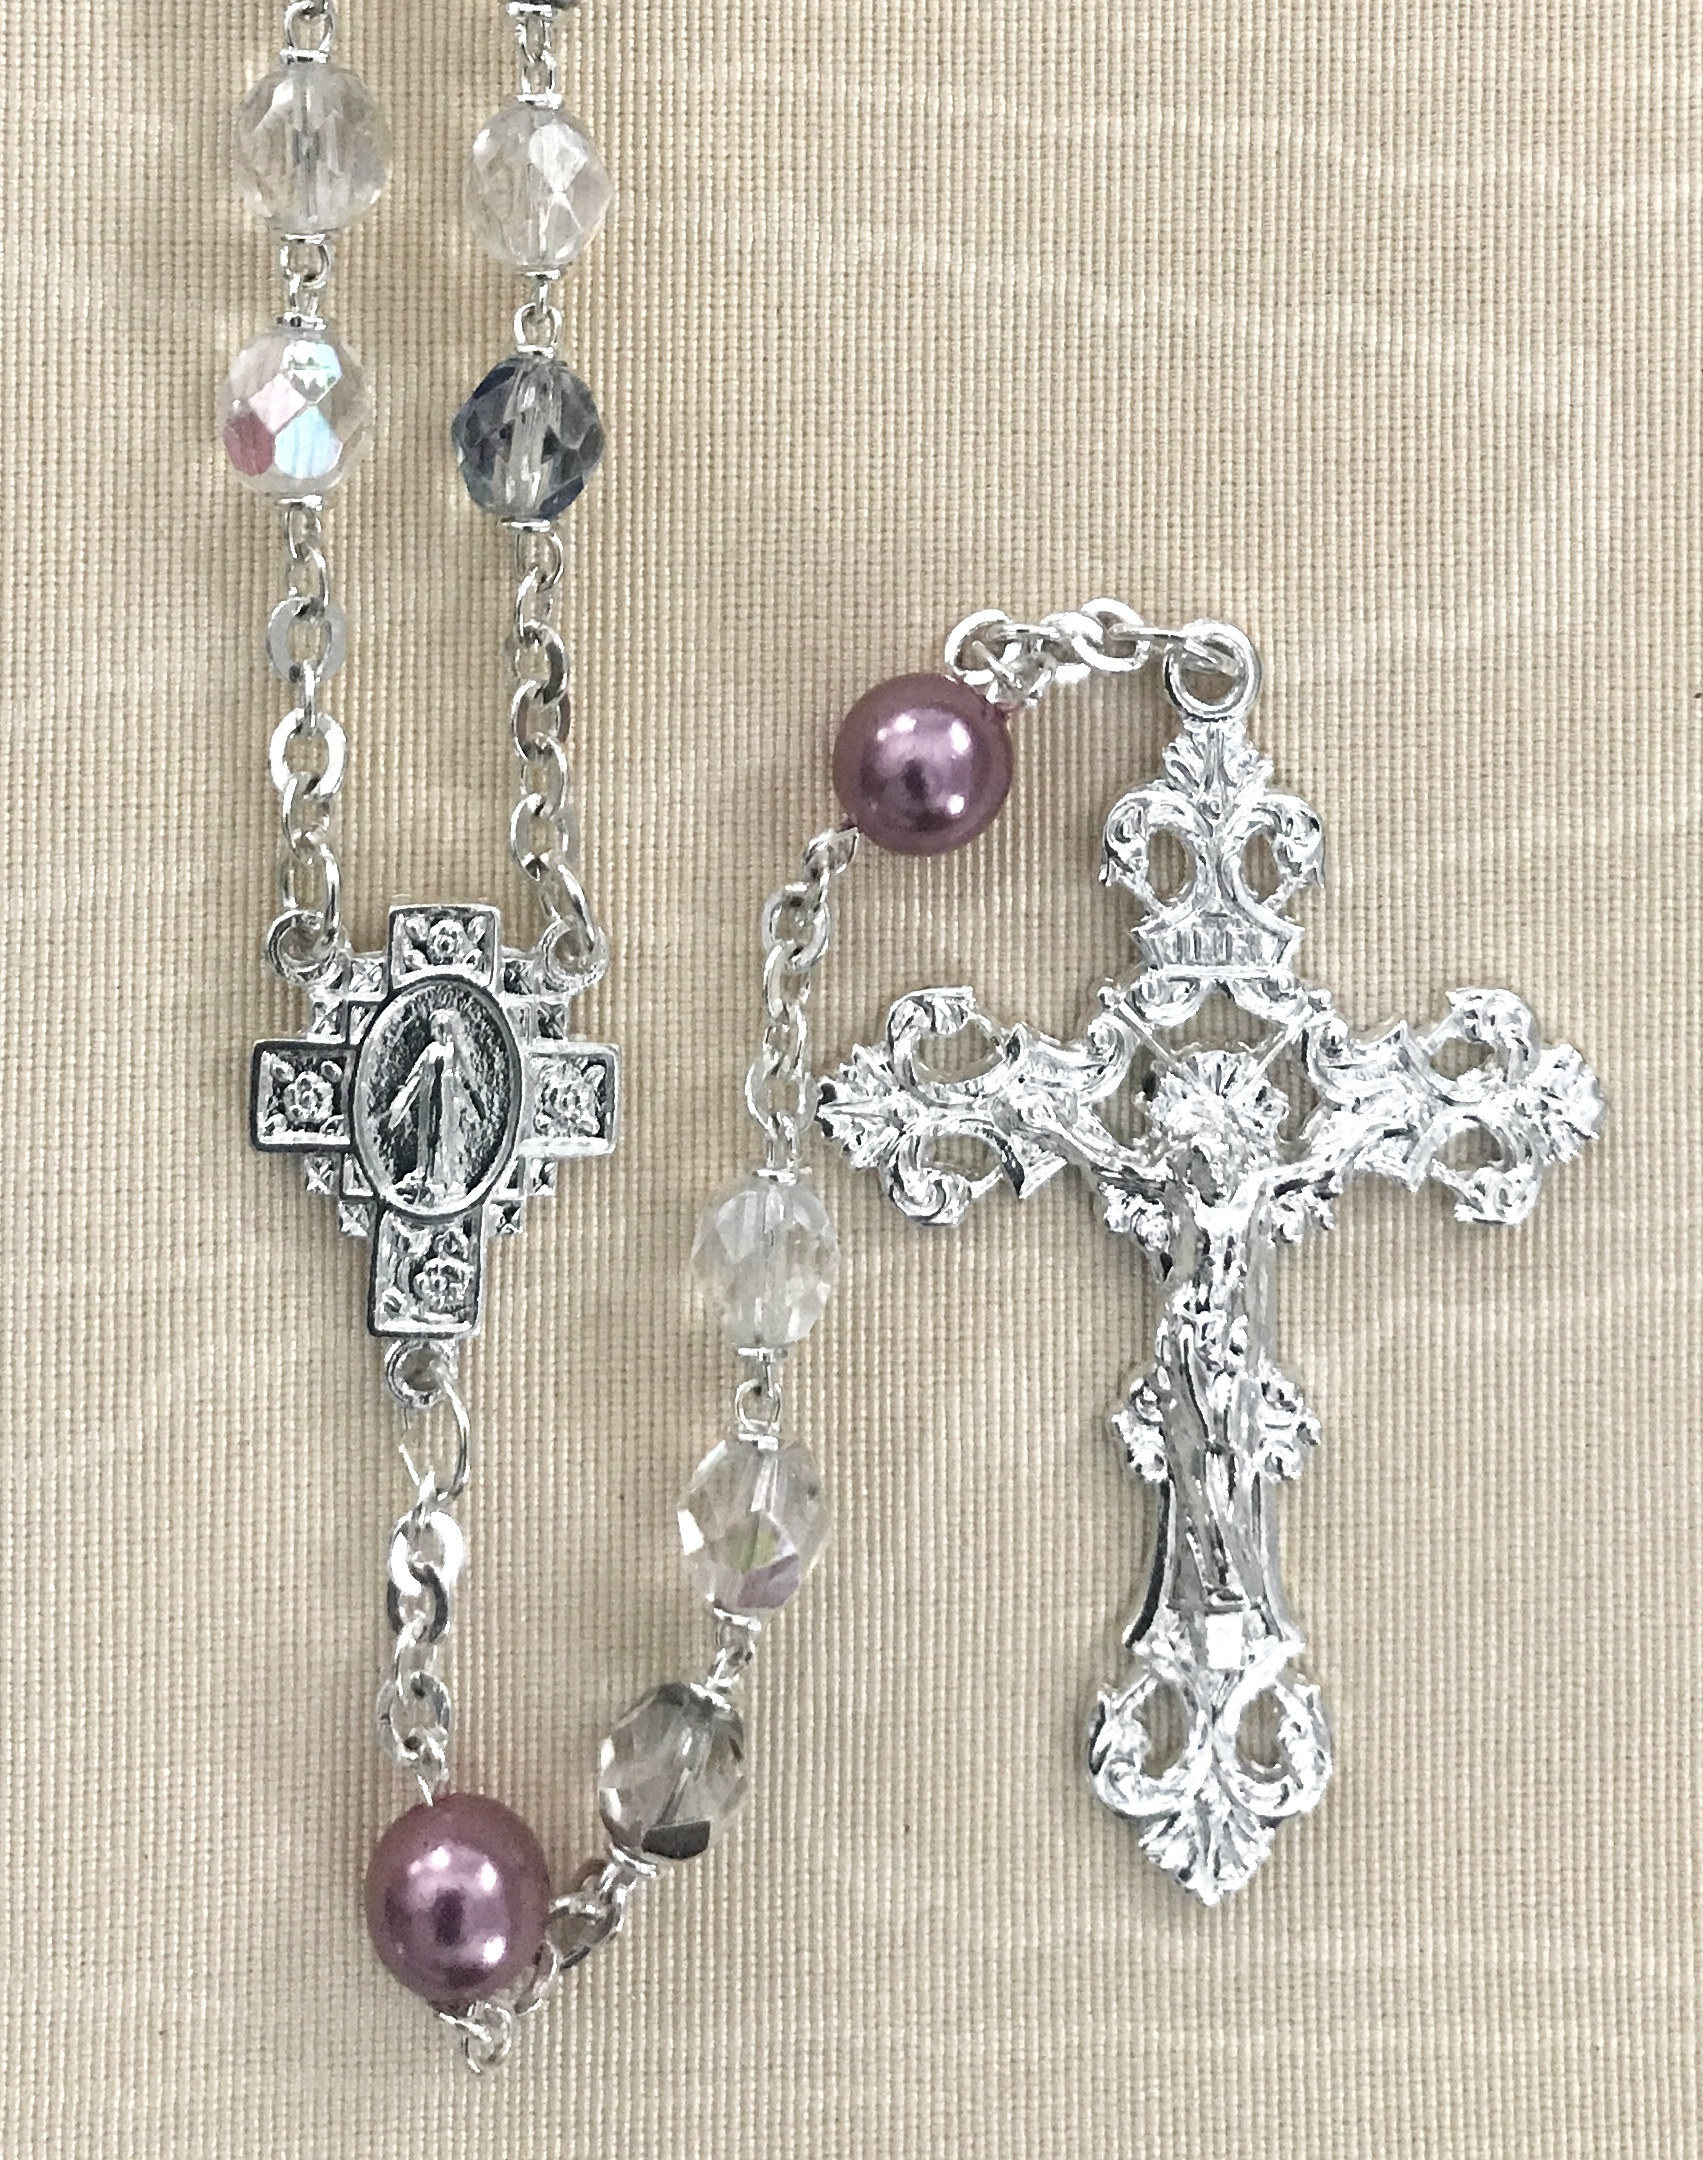 7mm CRYSTAL AB WITH DARK AMETHYST PEARL OUR FATHER BEADS STERLING SILVER PLATED ROSARY GIFT BOXED